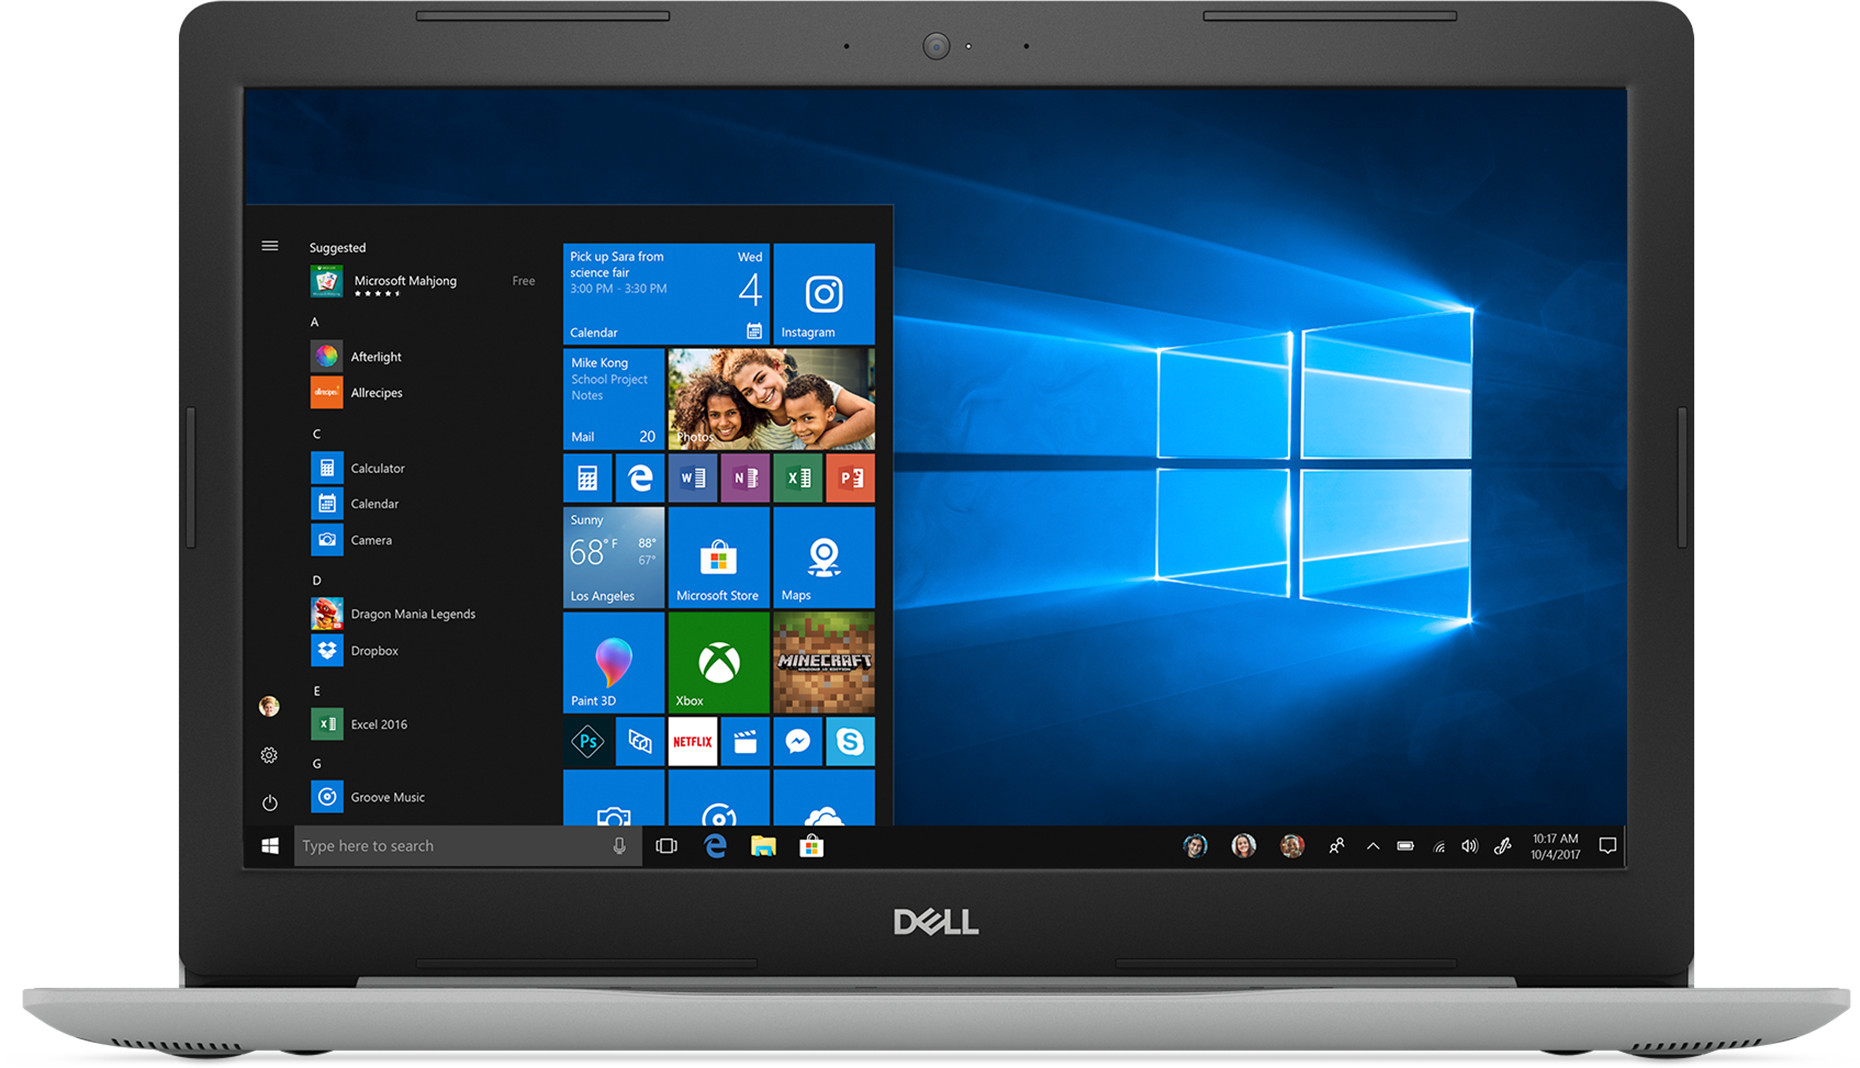 Front view of the Dell Inspiron 5570